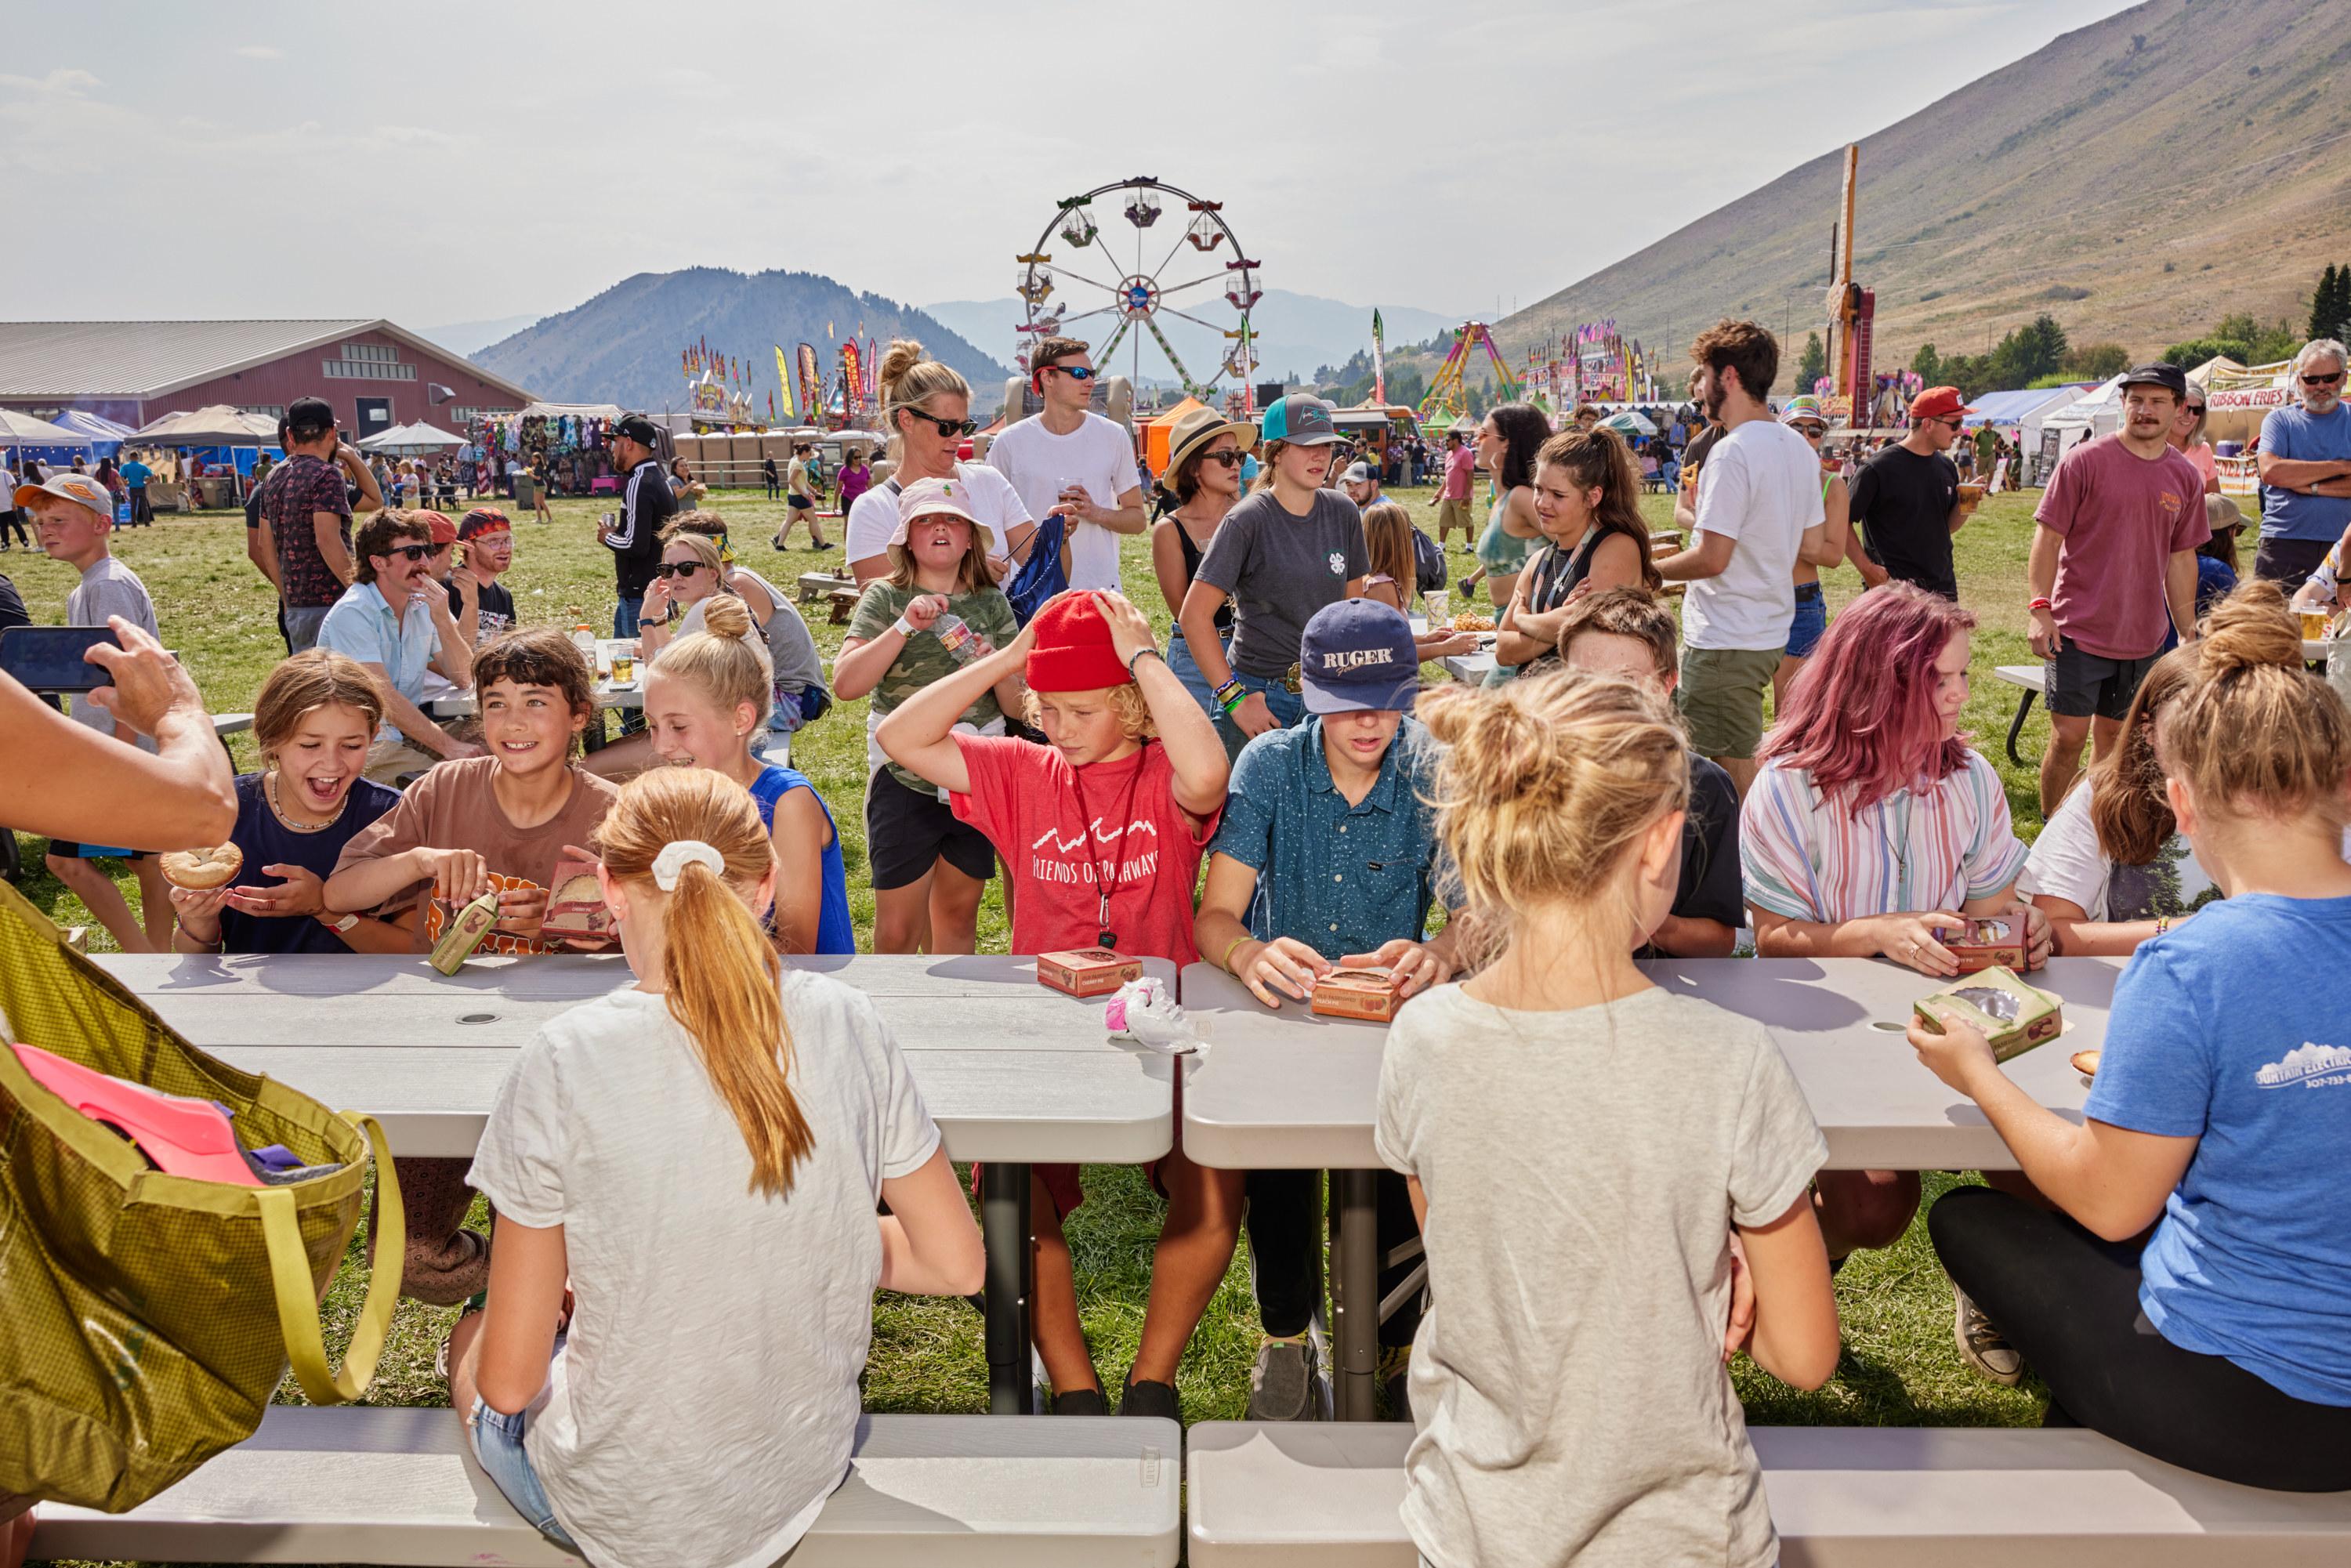 Children sitting at a picnic table with small pies, a ferris wheel, and parents in the background